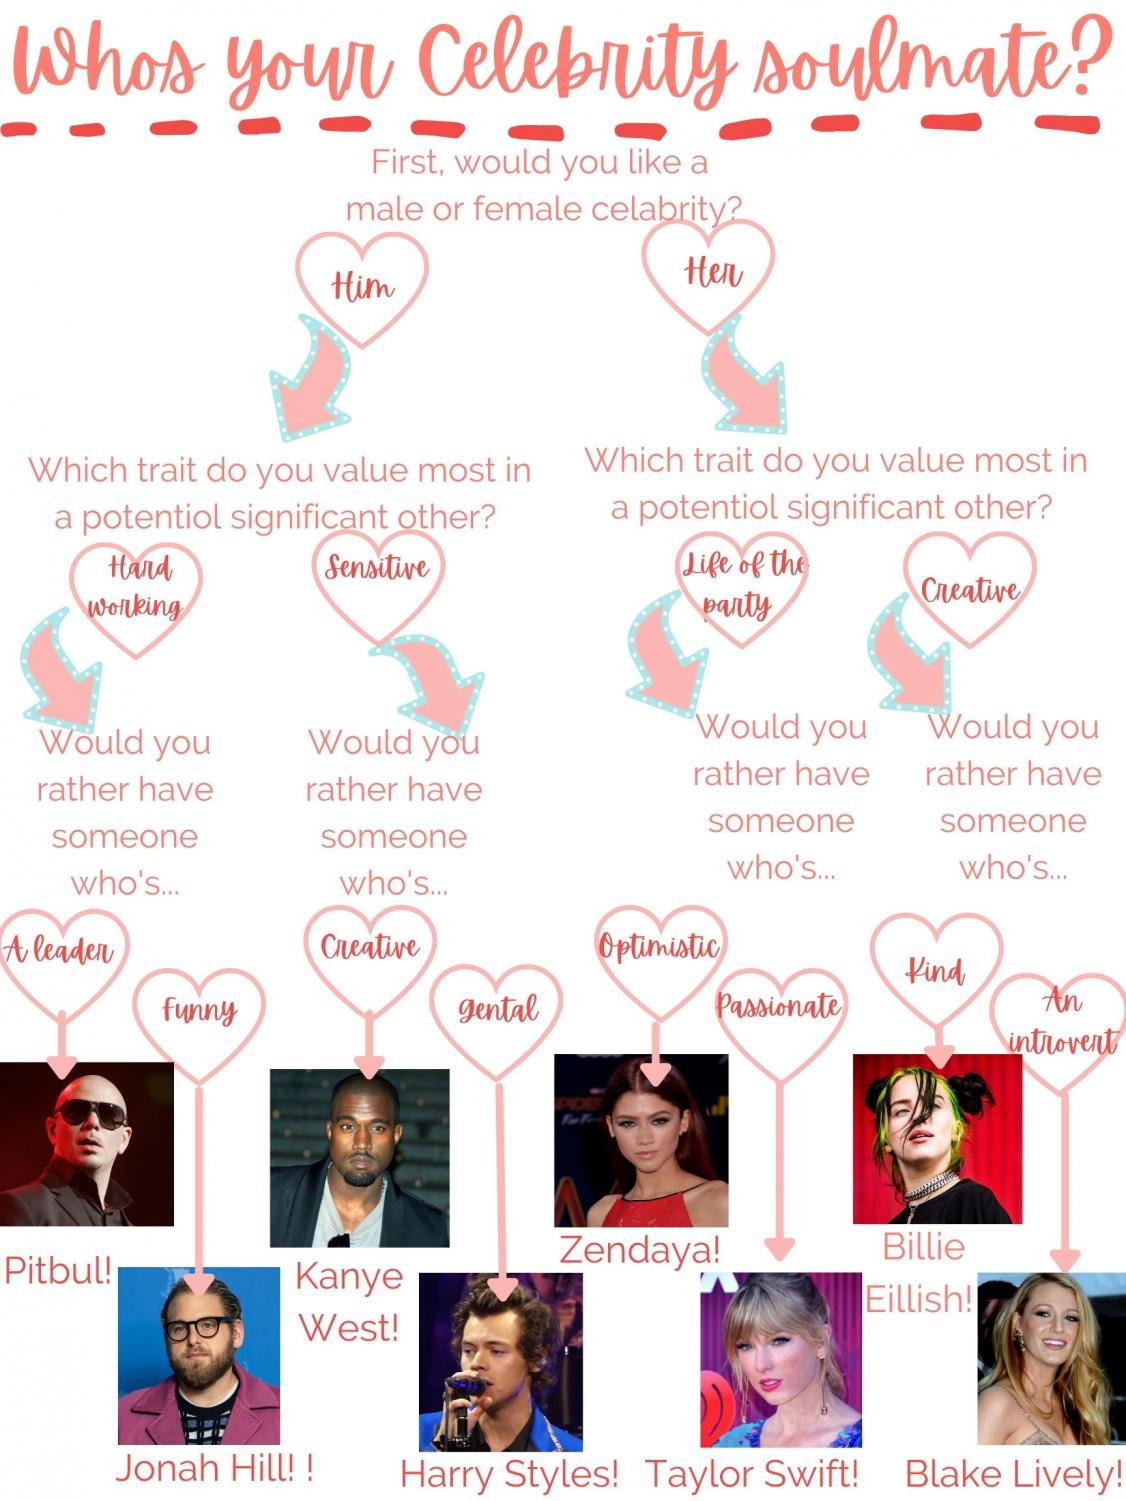 Whos your celebrity soulmate?